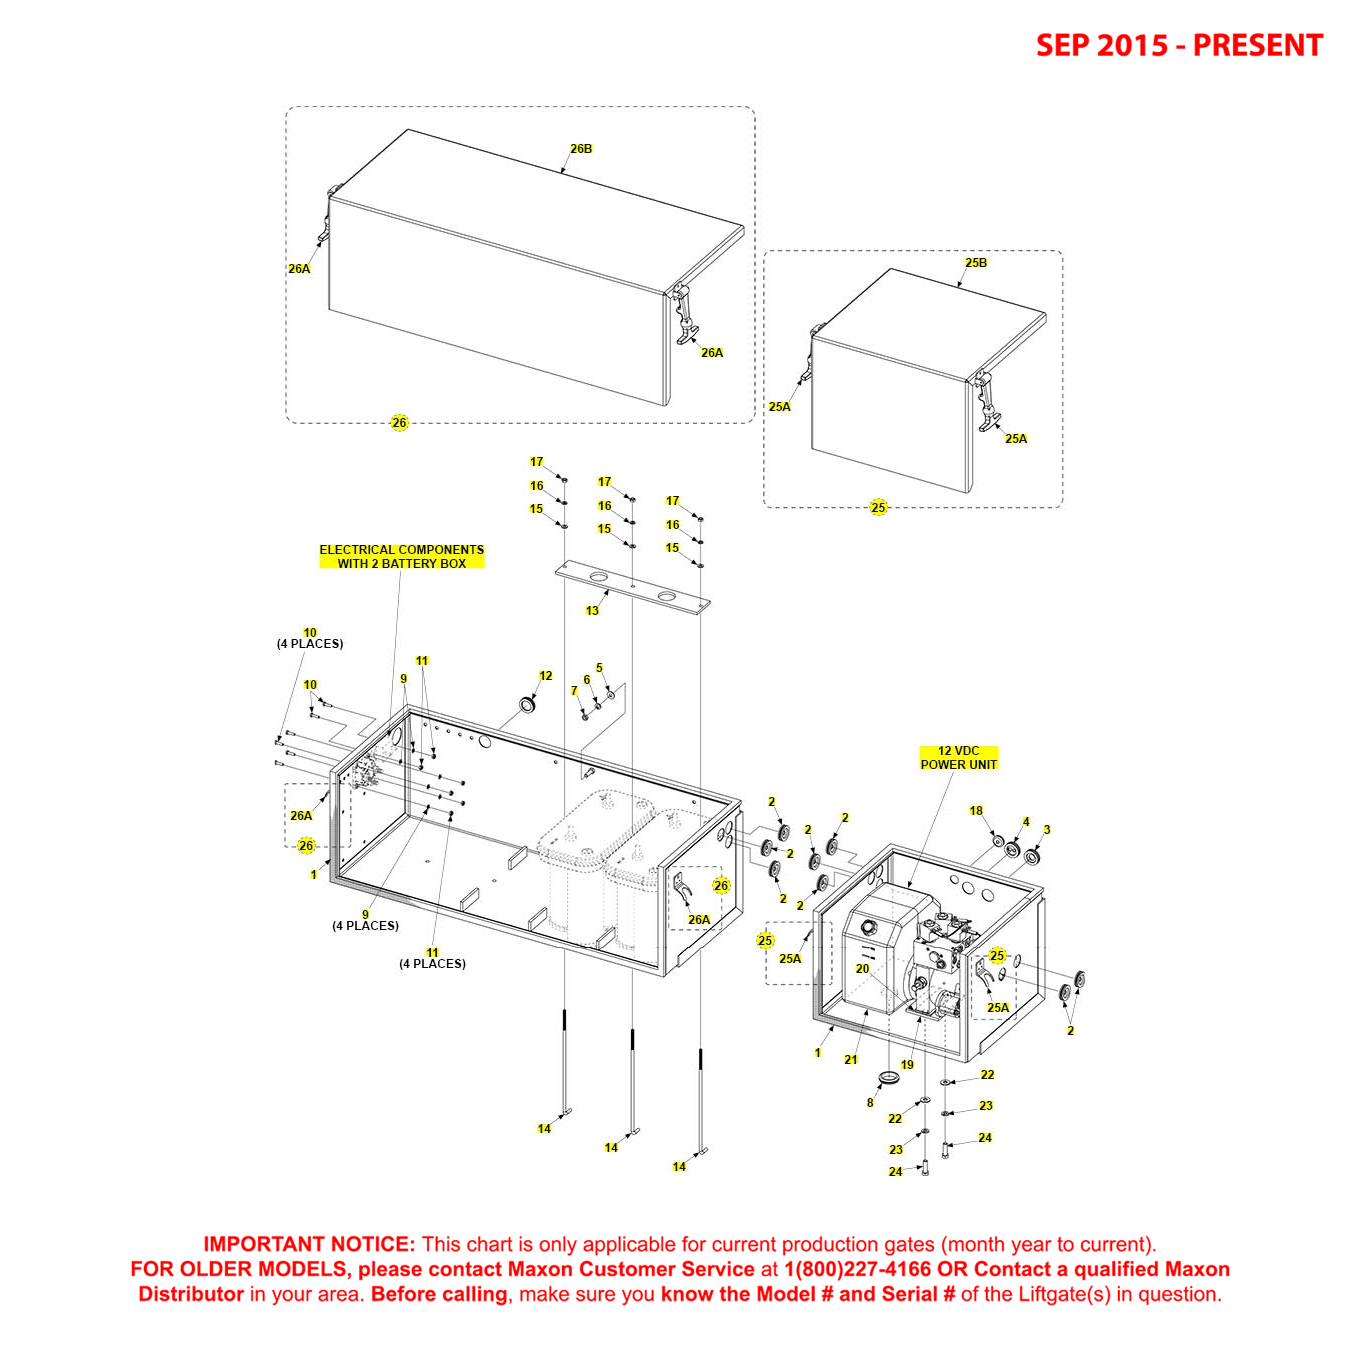 RA (Sep 2015 - Present) Battery And Pump Box Assembly For 82 Inch Mainframe With 2 Battery Box